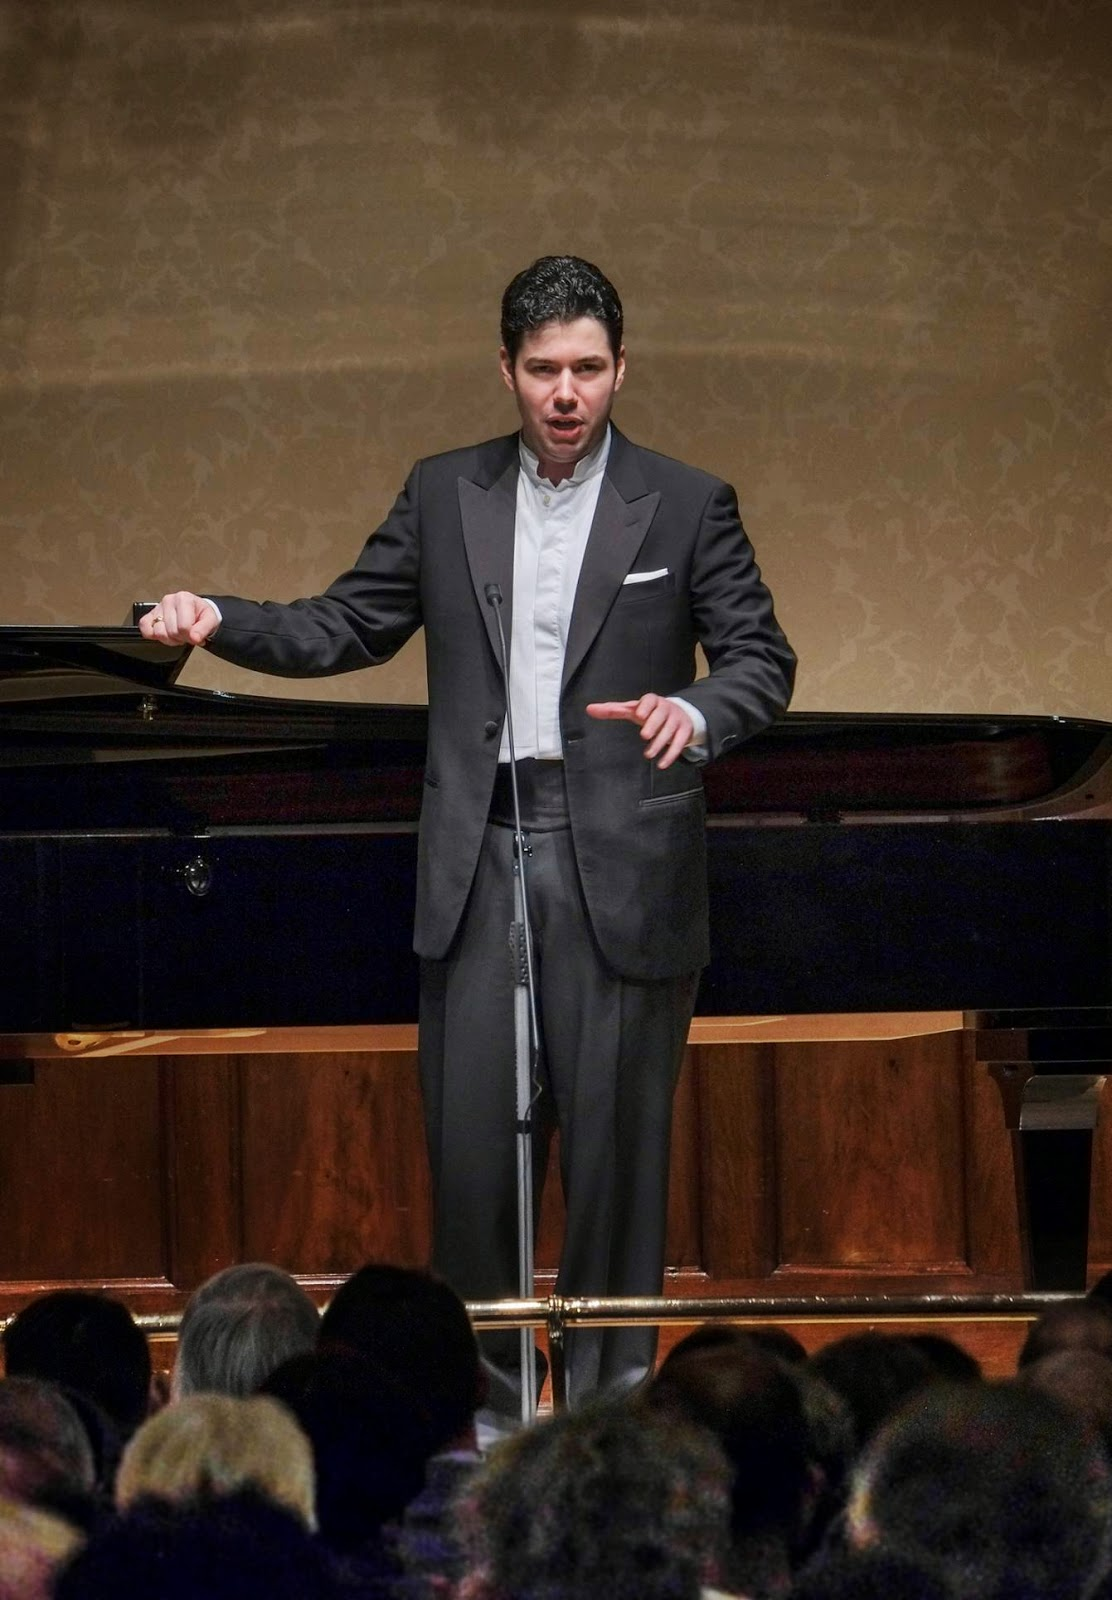 Antonio Poli at the Wigmore Hall for Rosenblatt Recitals © Jonathan Rose